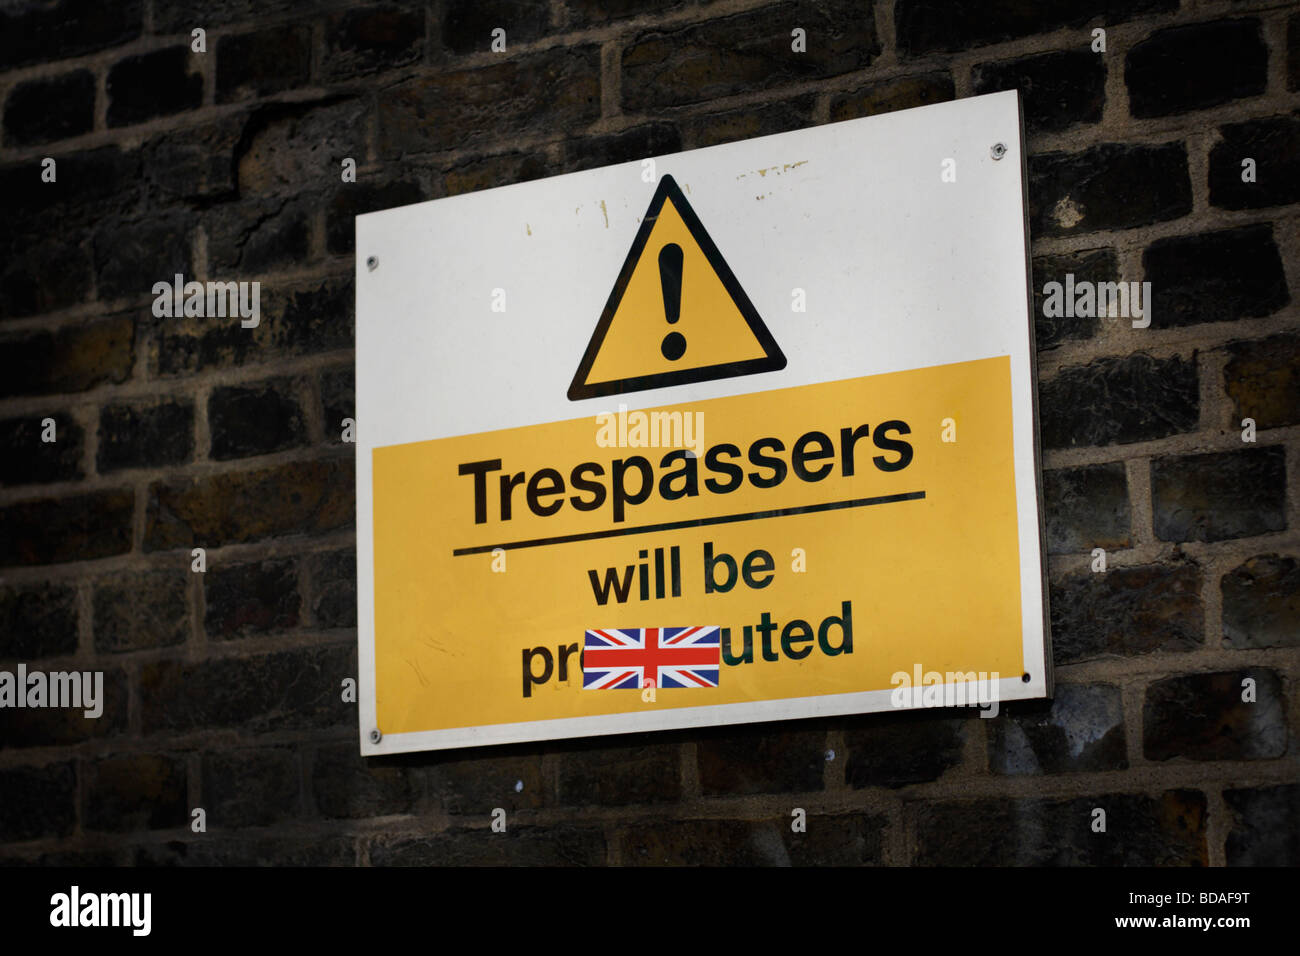 Street sign with the word Trespasser will be prosecuted written on it - Stock Image